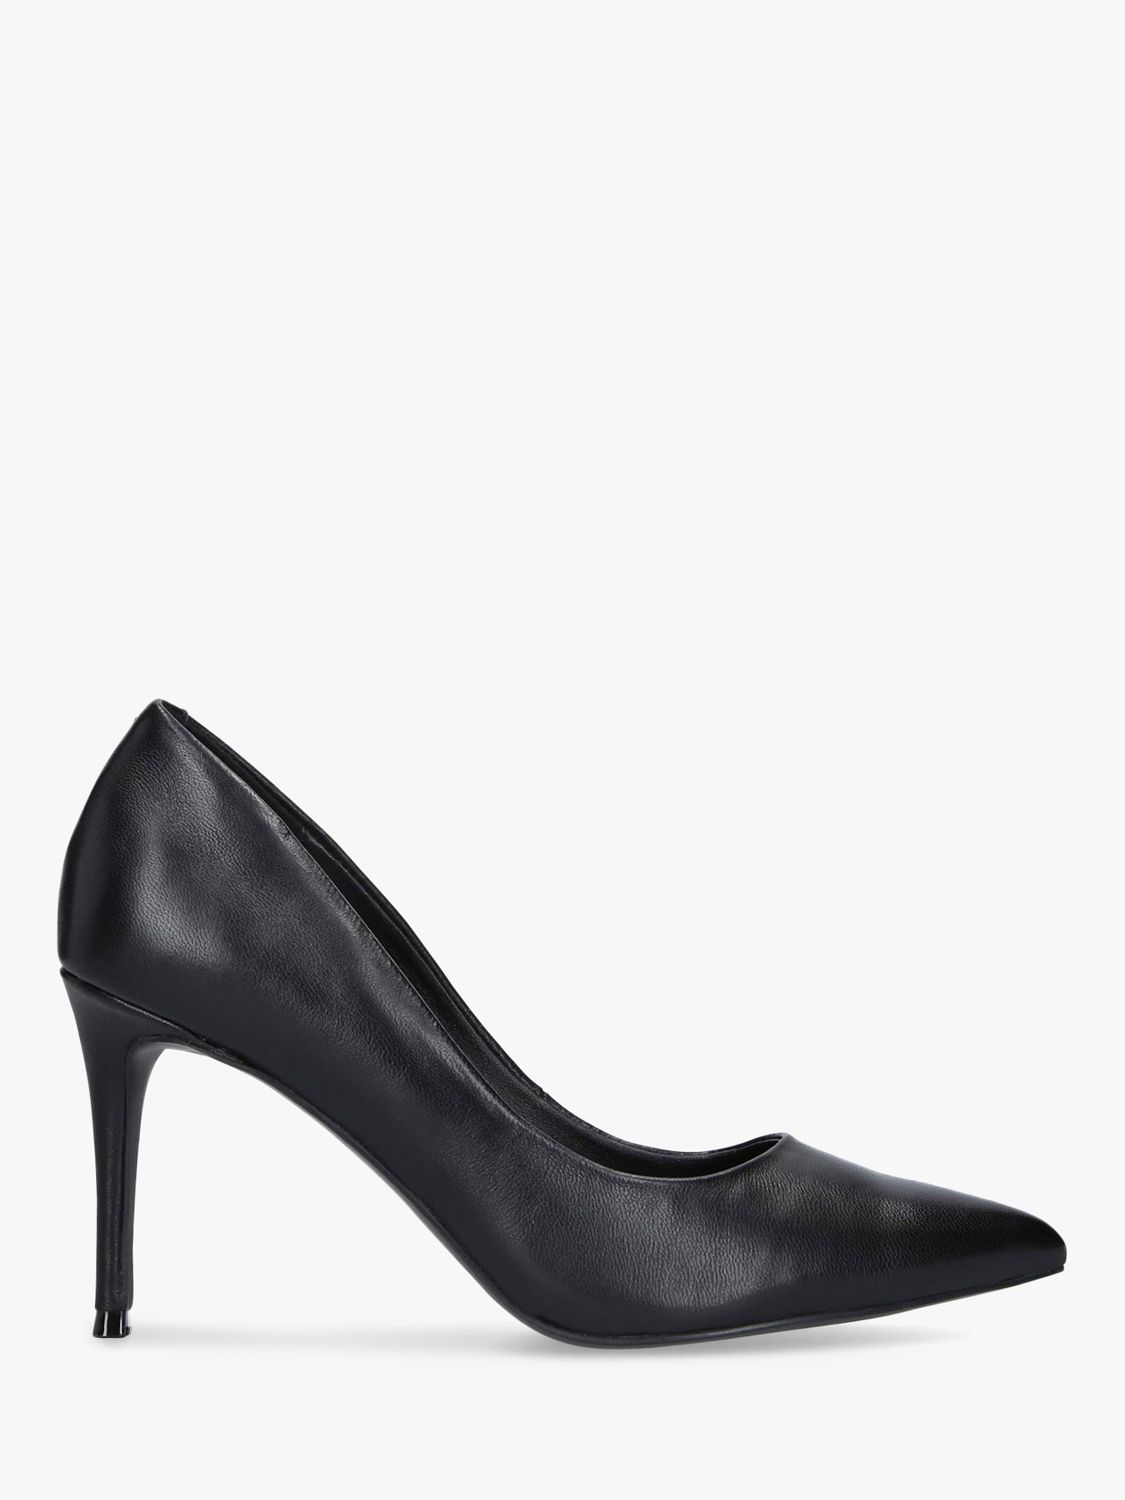 Steve Madden Steve Madden Lillie Stiletto Heel Leather Court Shoes, Black